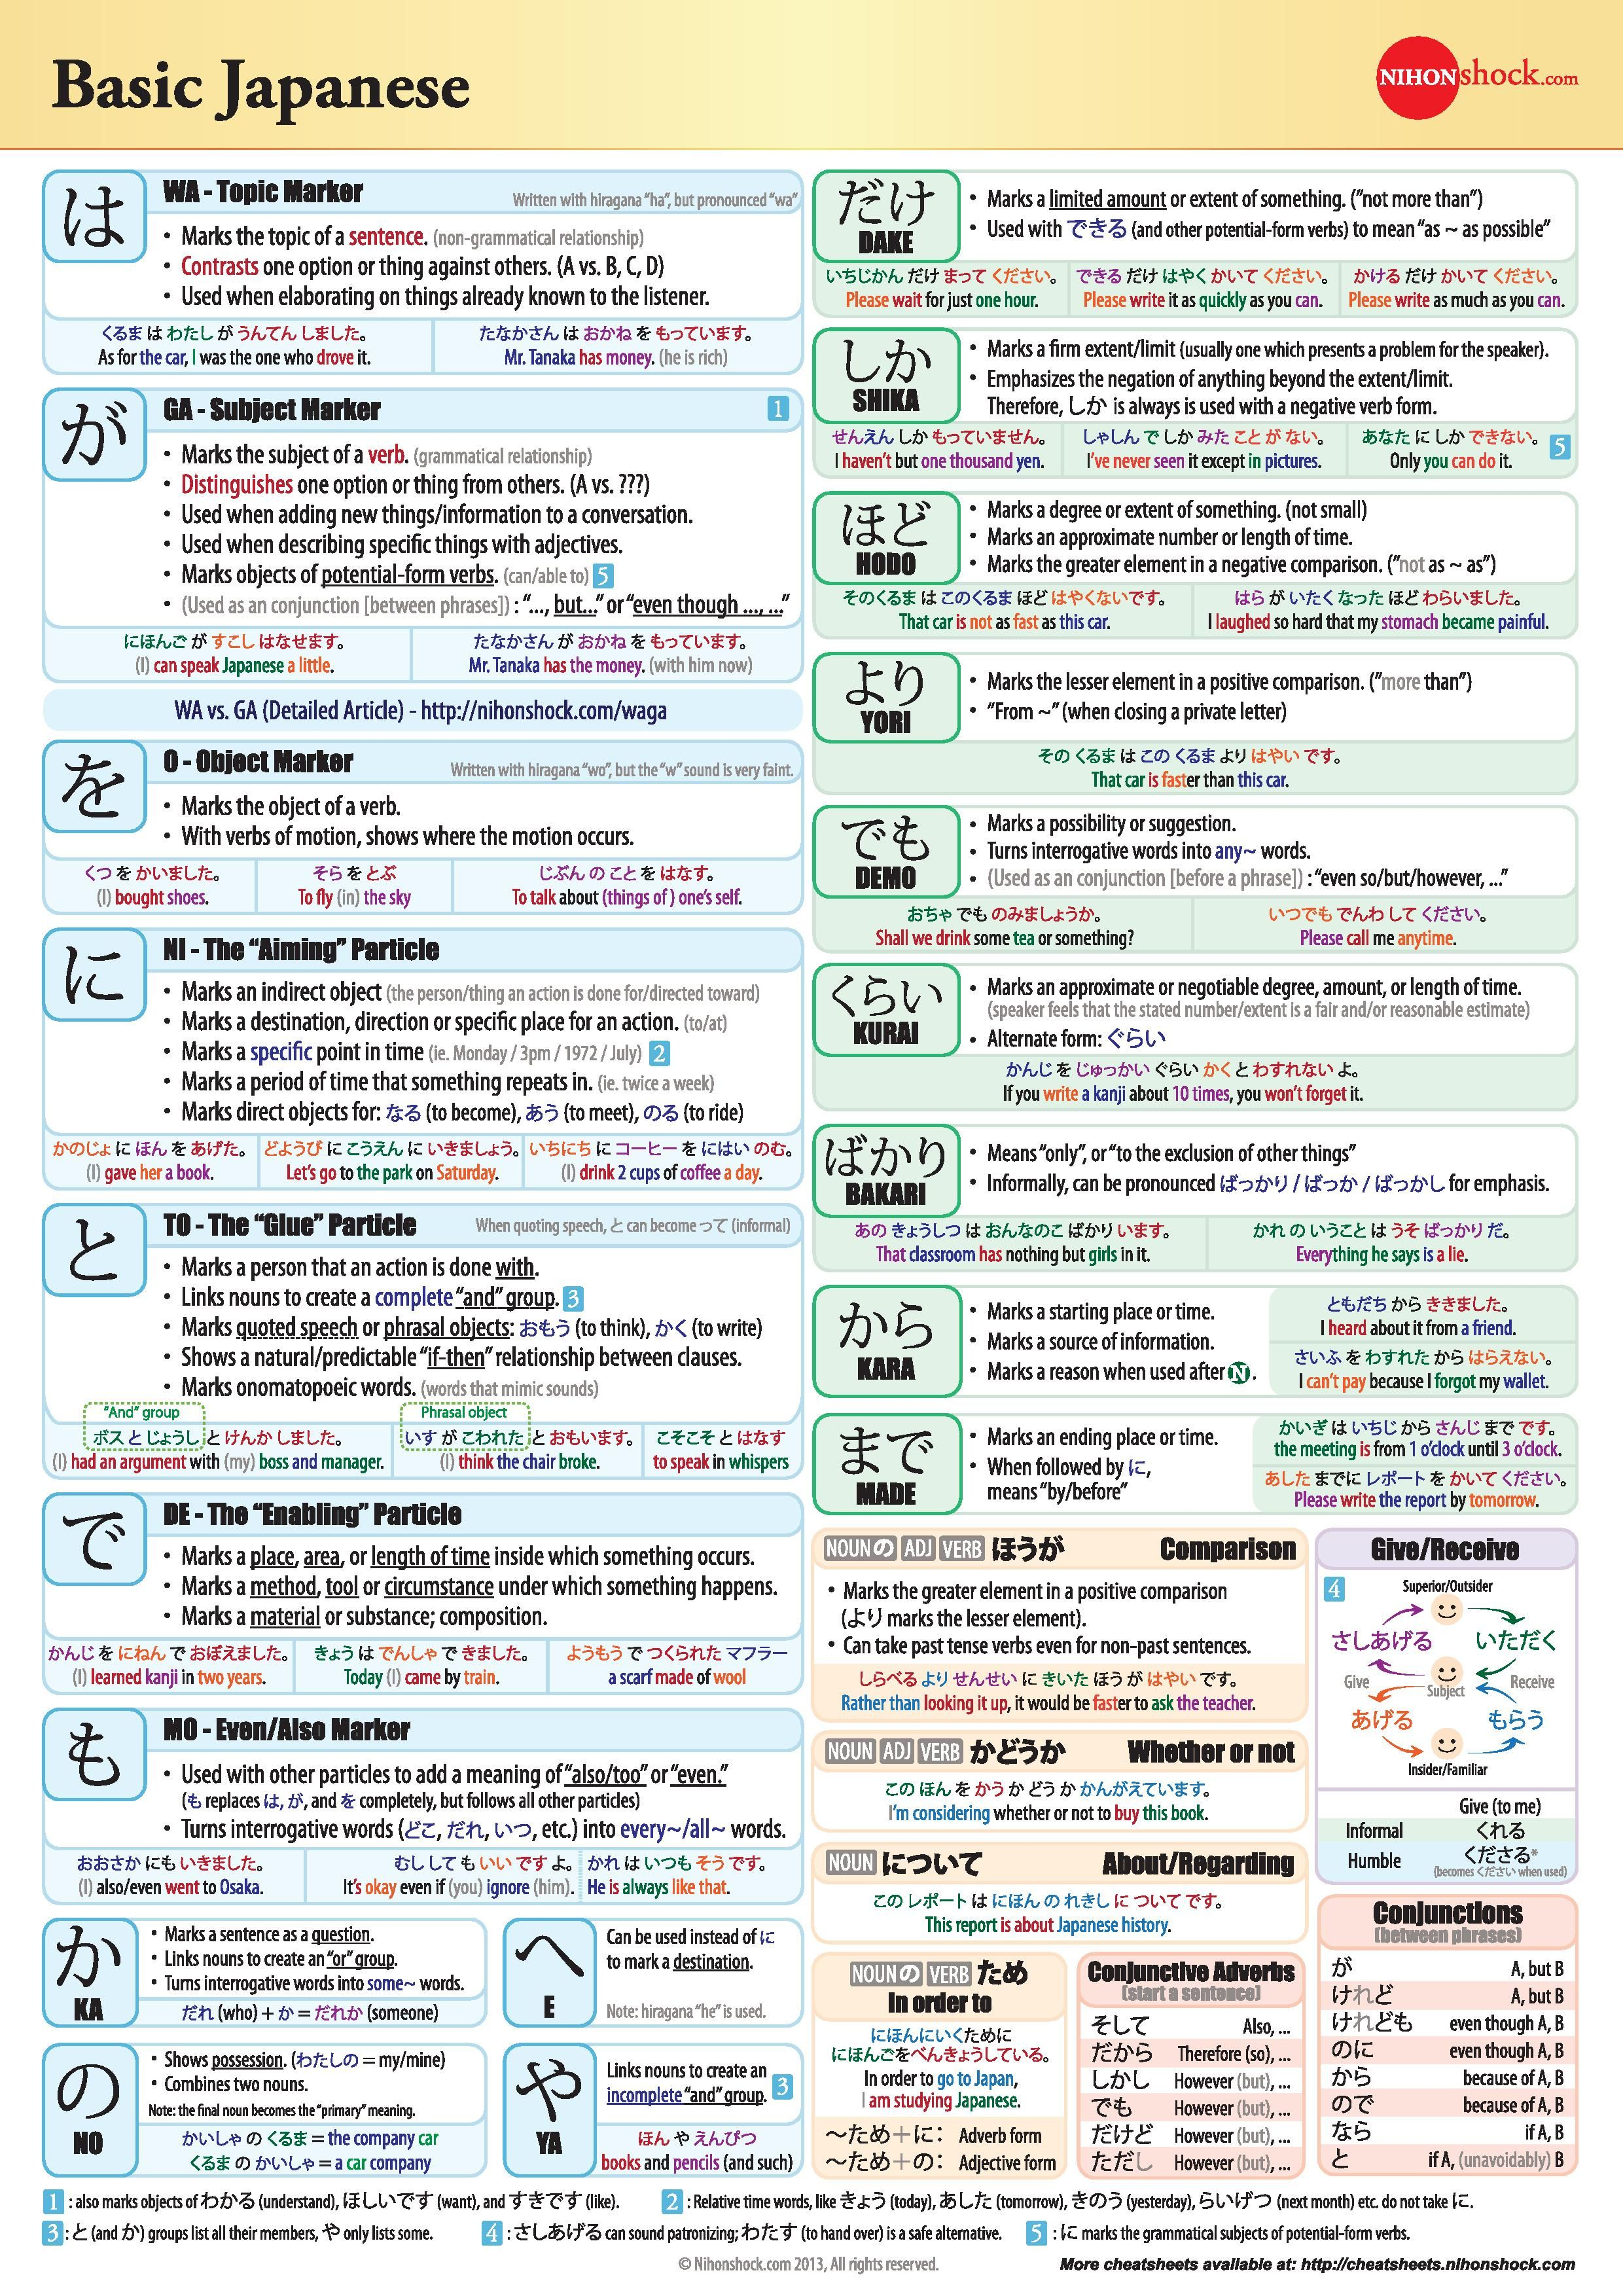 Basic Japanese Grammar Chart Ii Japanese Language